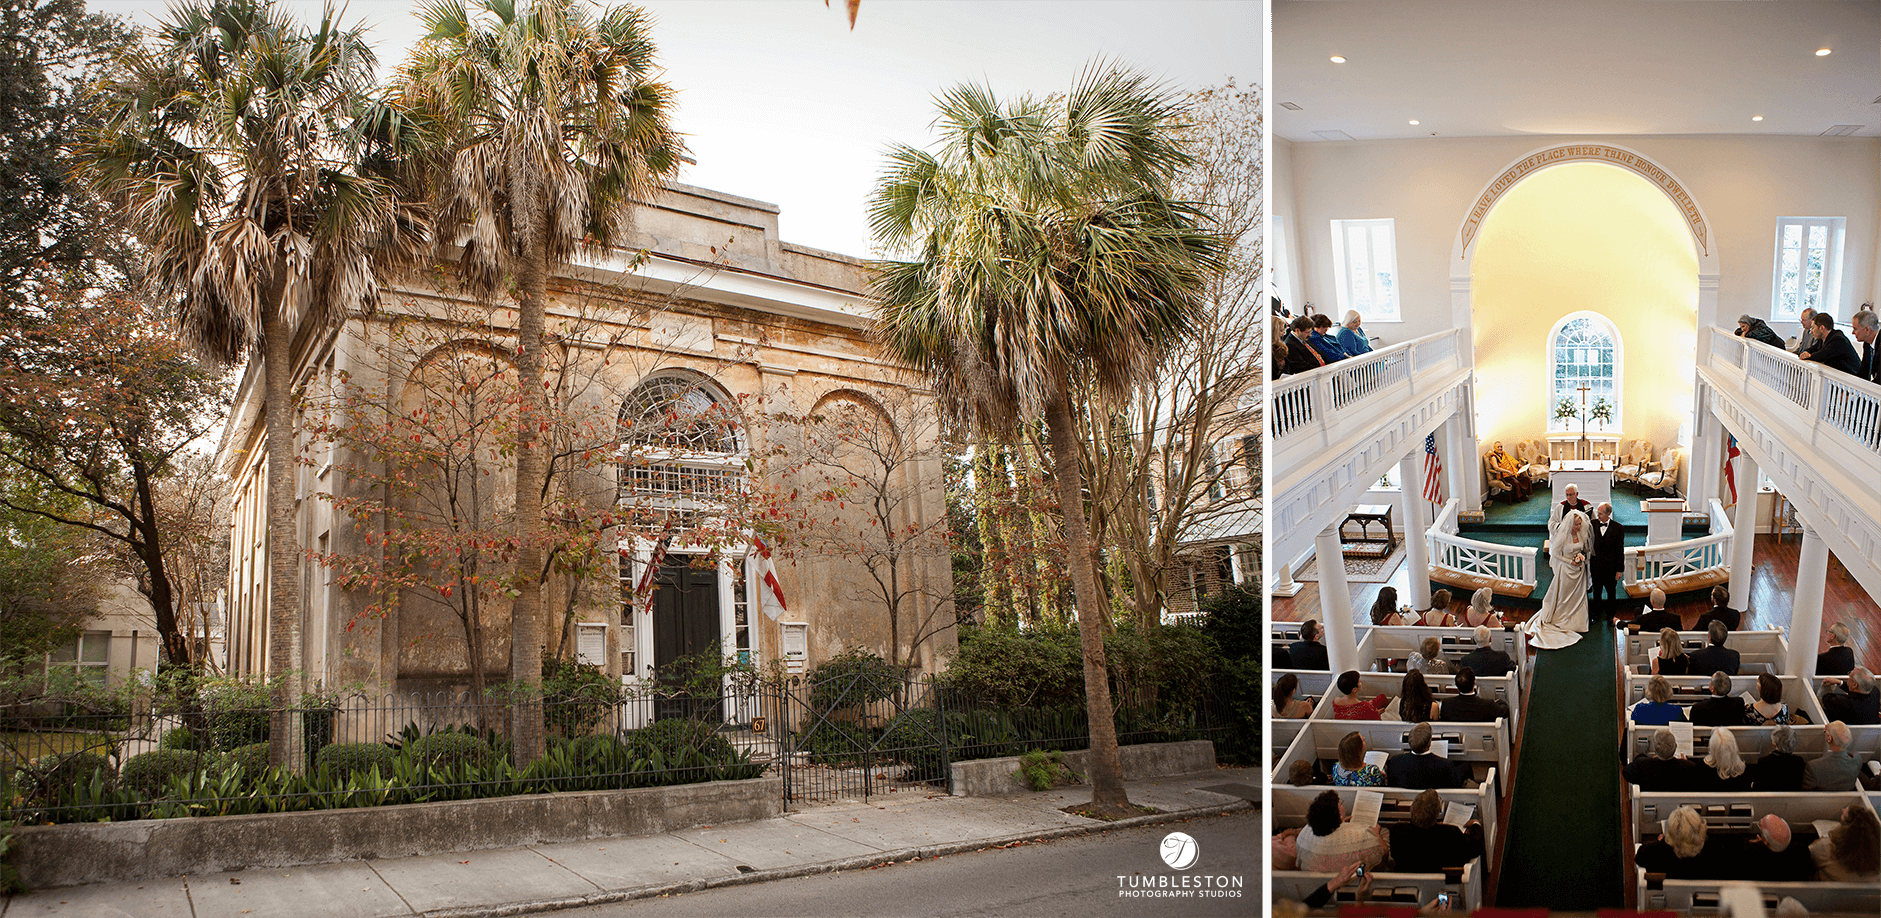 Our favorite wedding chapels best wedding venues in charleston sc st stephens chapel charleston junglespirit Images